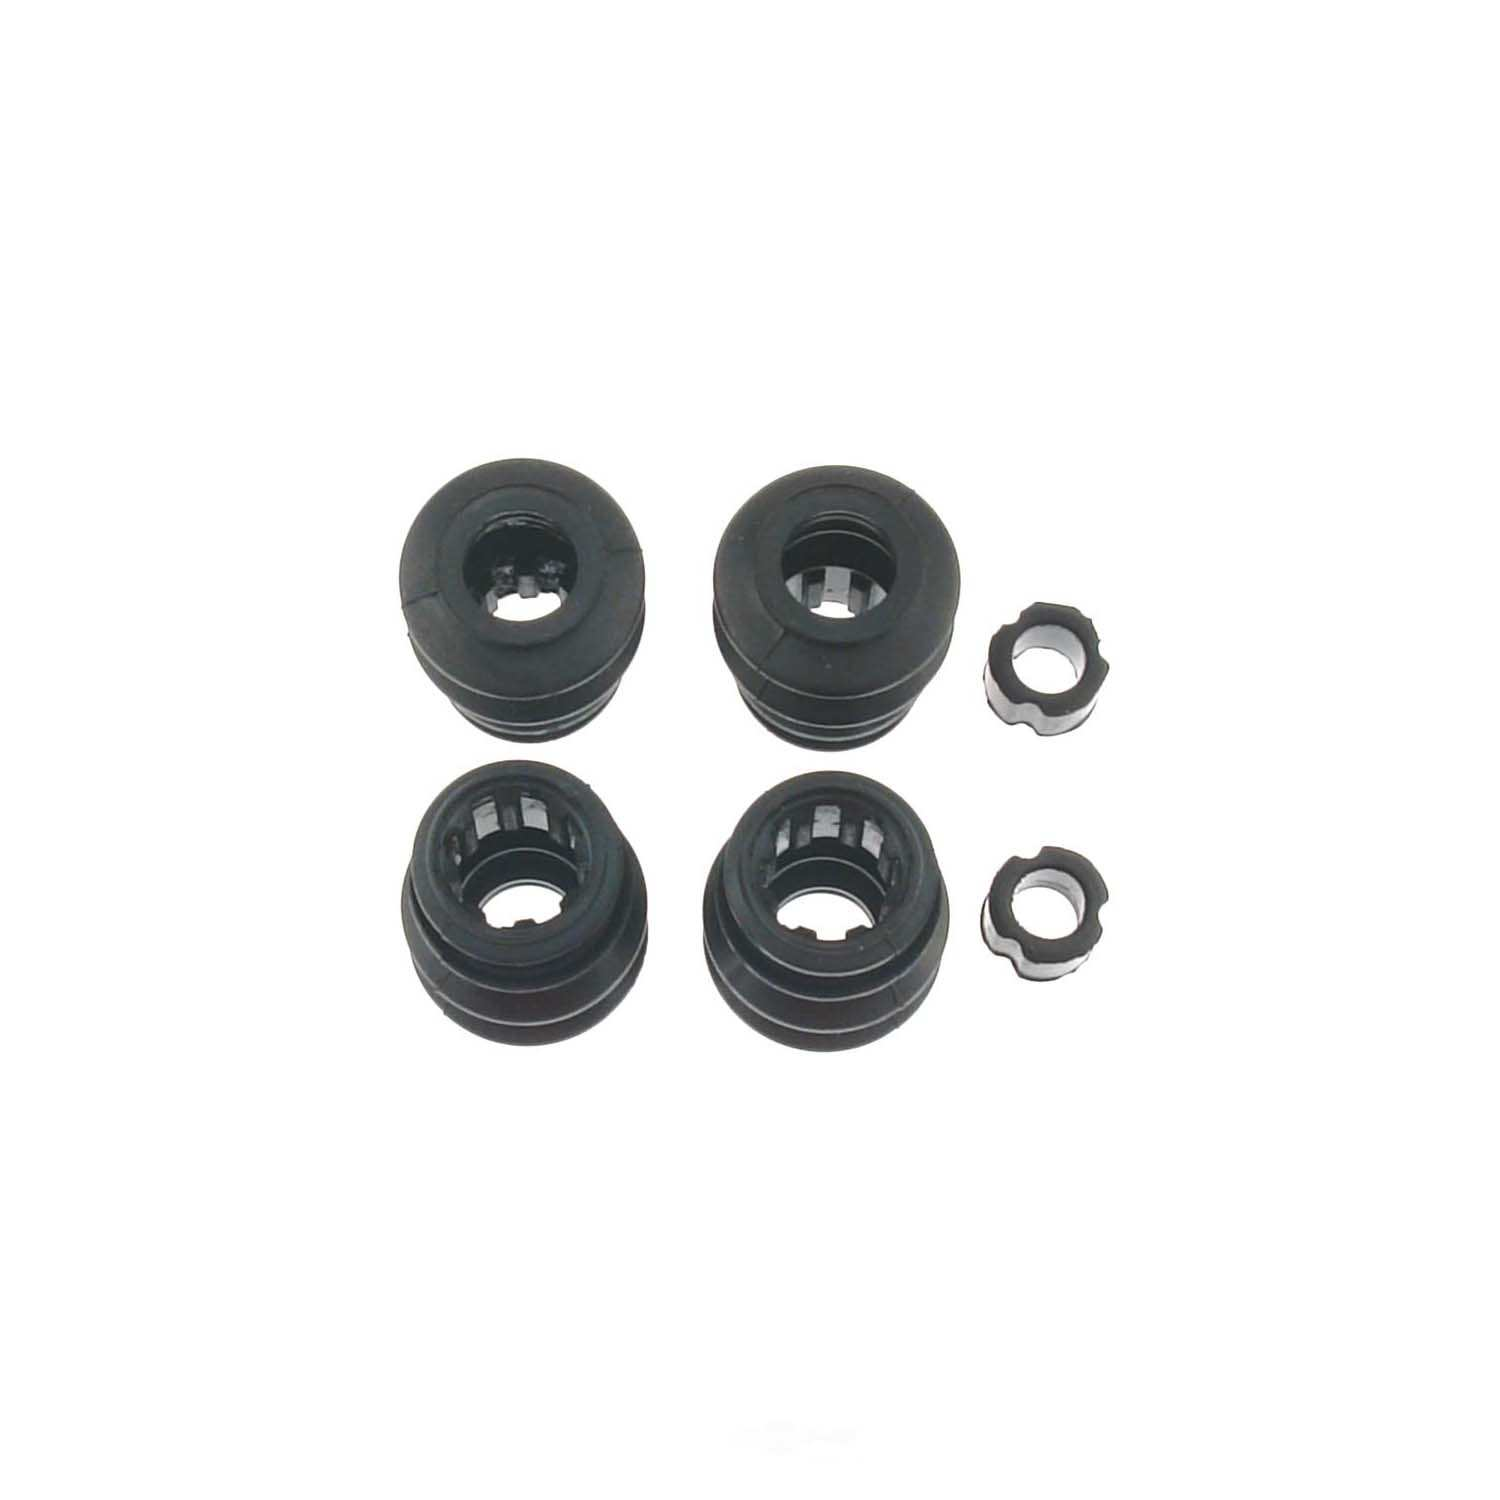 CARLSON QUALITY BRAKE PARTS - Disc Brake Caliper Guide Pin Boot Kit (Front) - CRL 16080